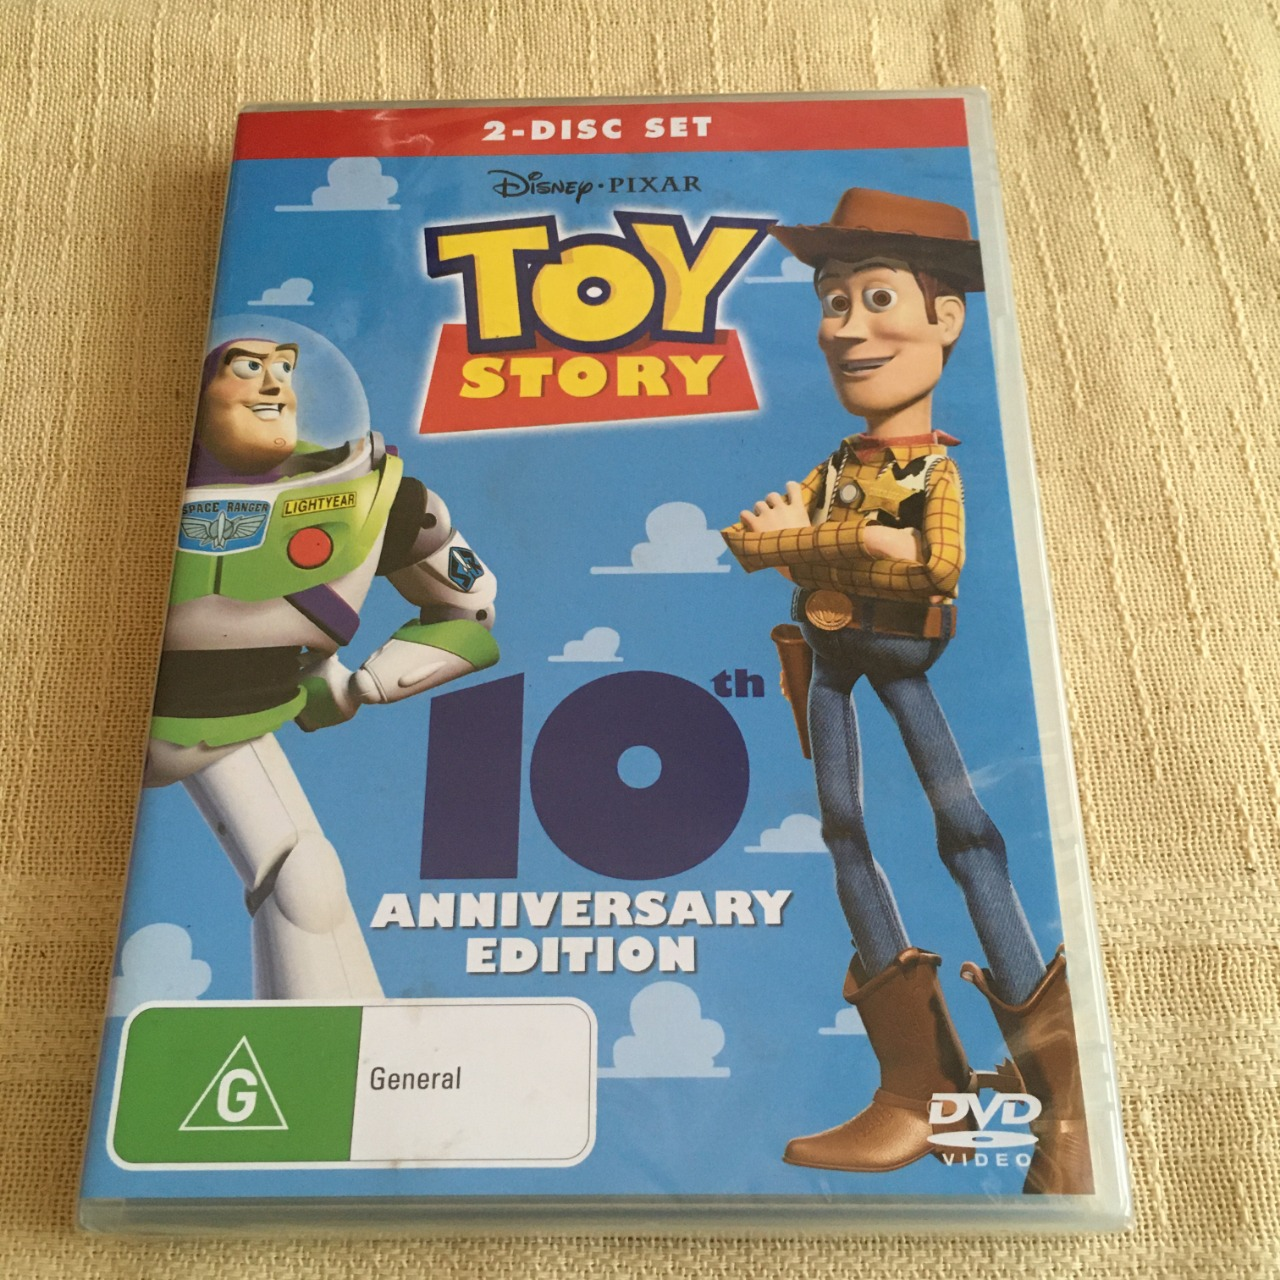 Toy Story DVD - 2 Disc Set 10th Anniversary Edition - Brand New